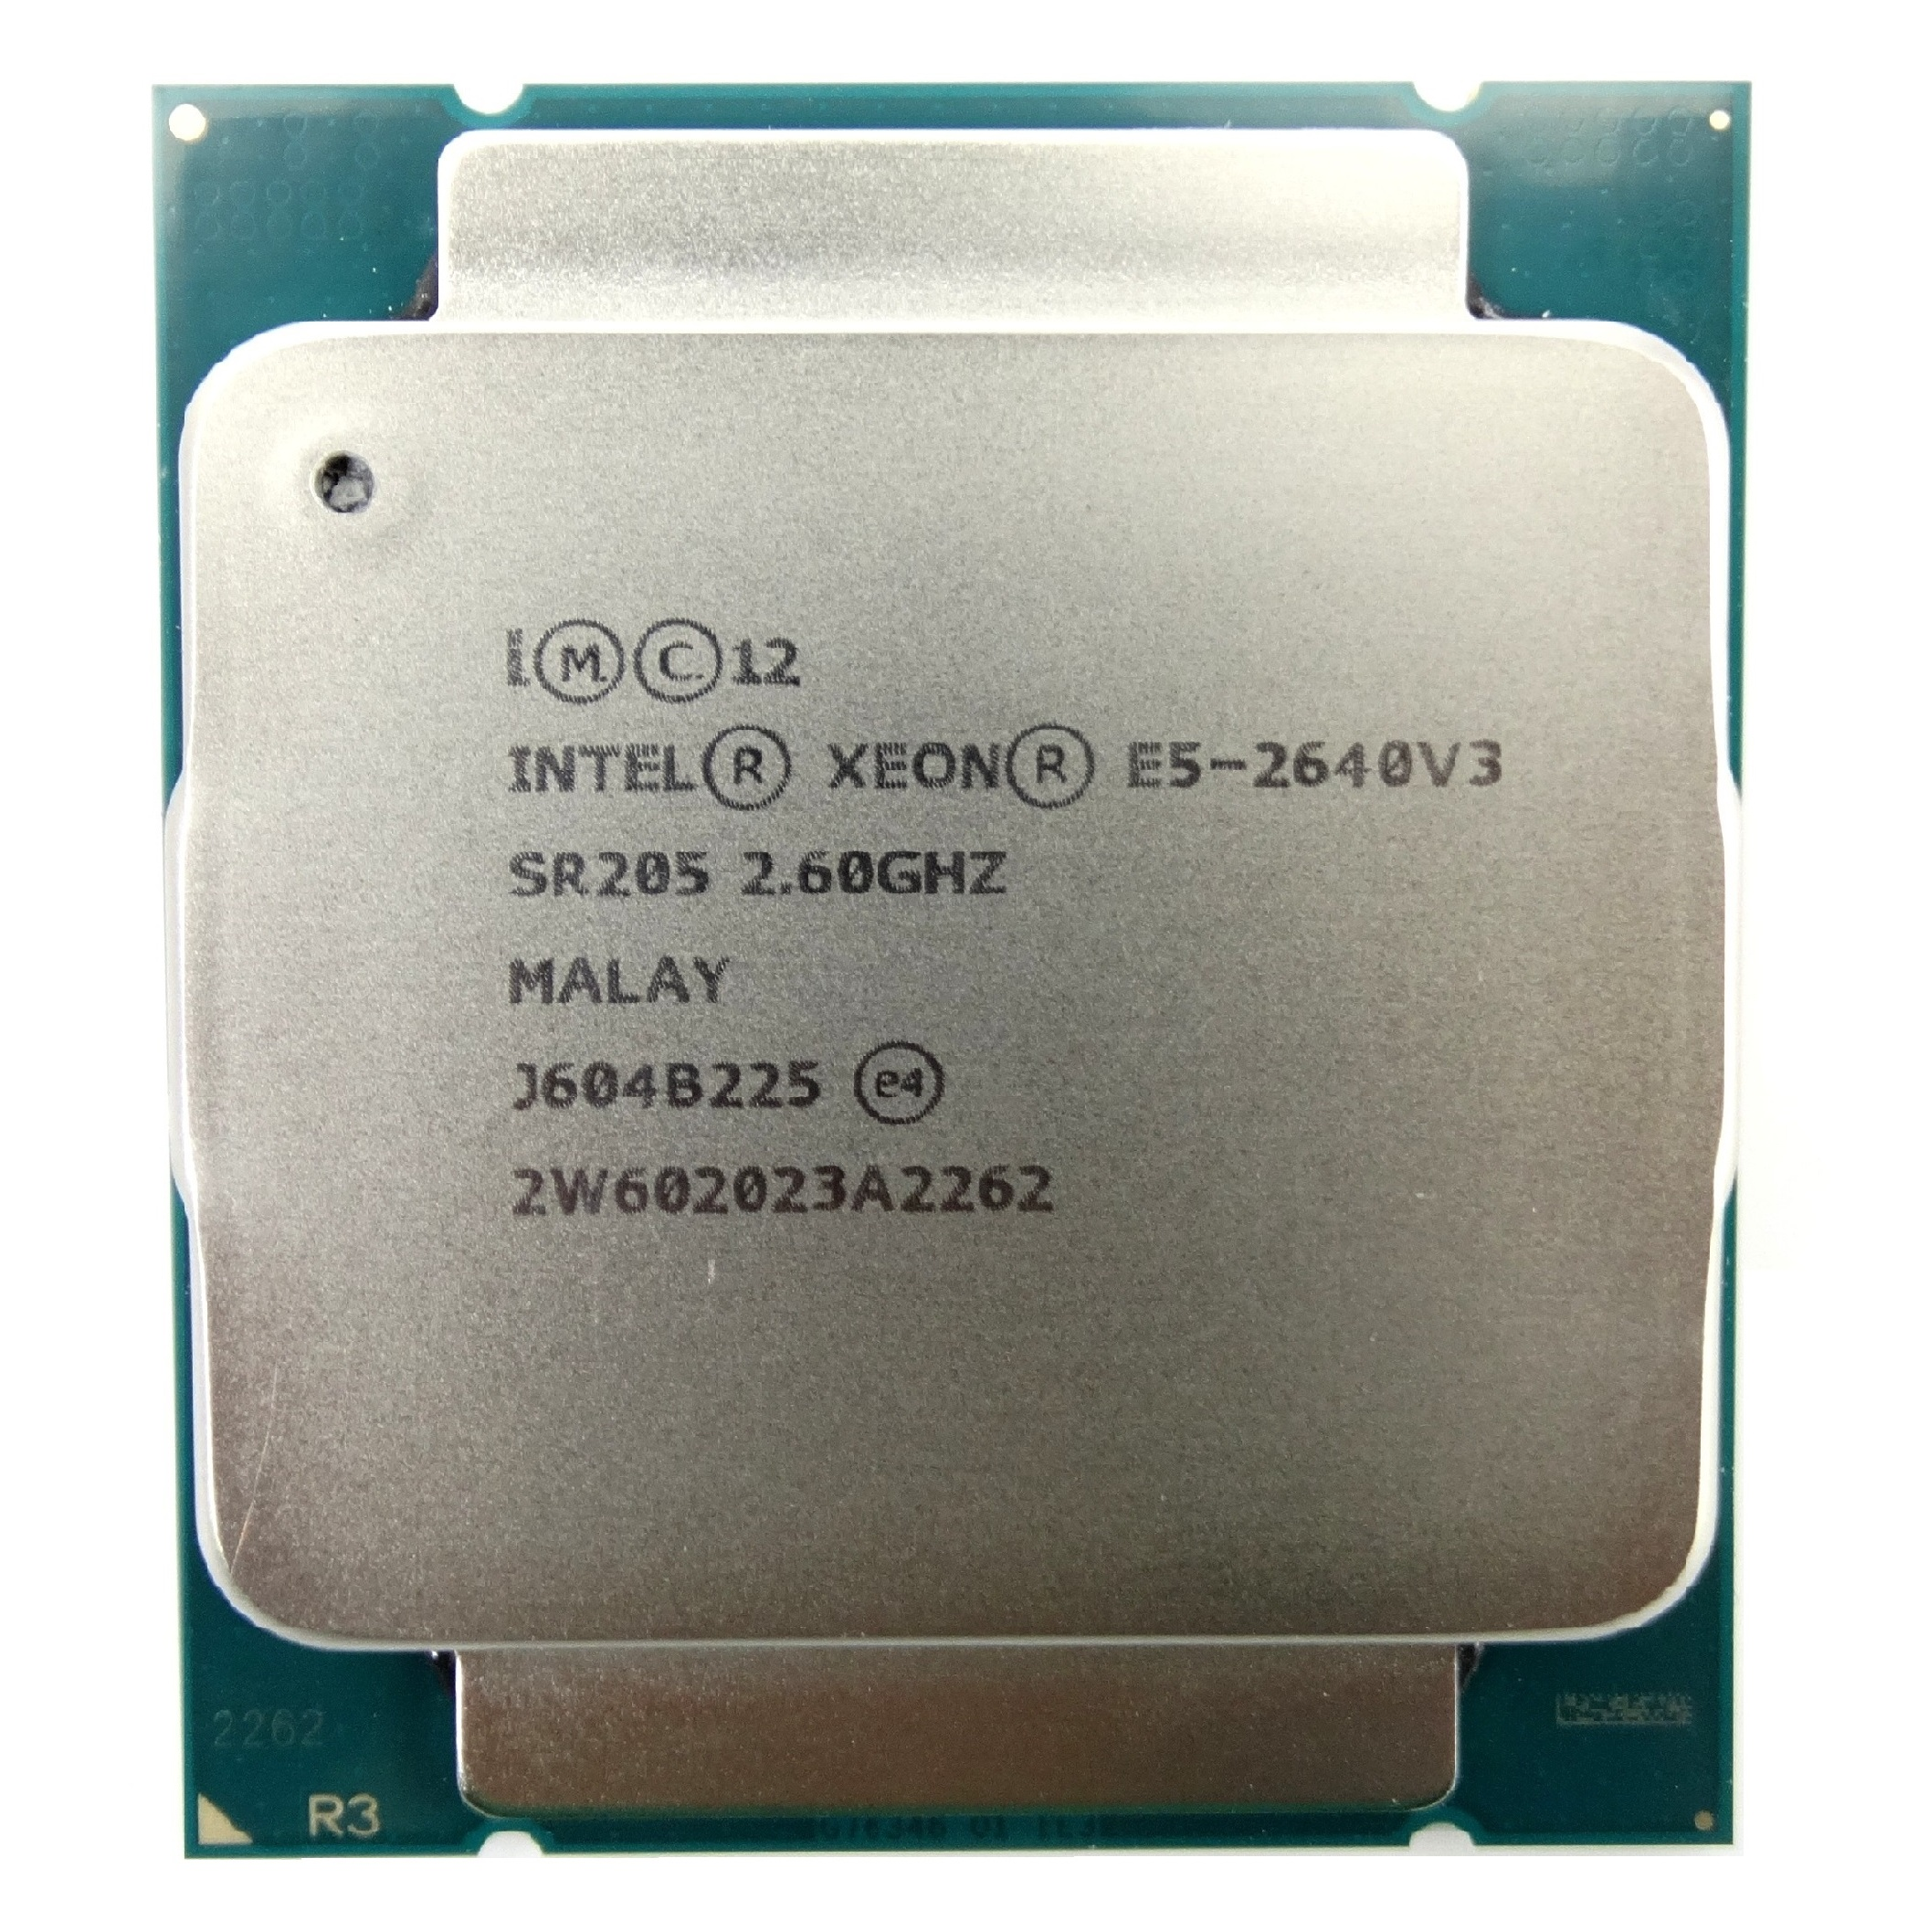 INTEL XEON E5-2640V3 2.6GHZ 8 CORE 20M 8.0GT/S 90W LGA 2011-3 PROCESSOR (SR205)